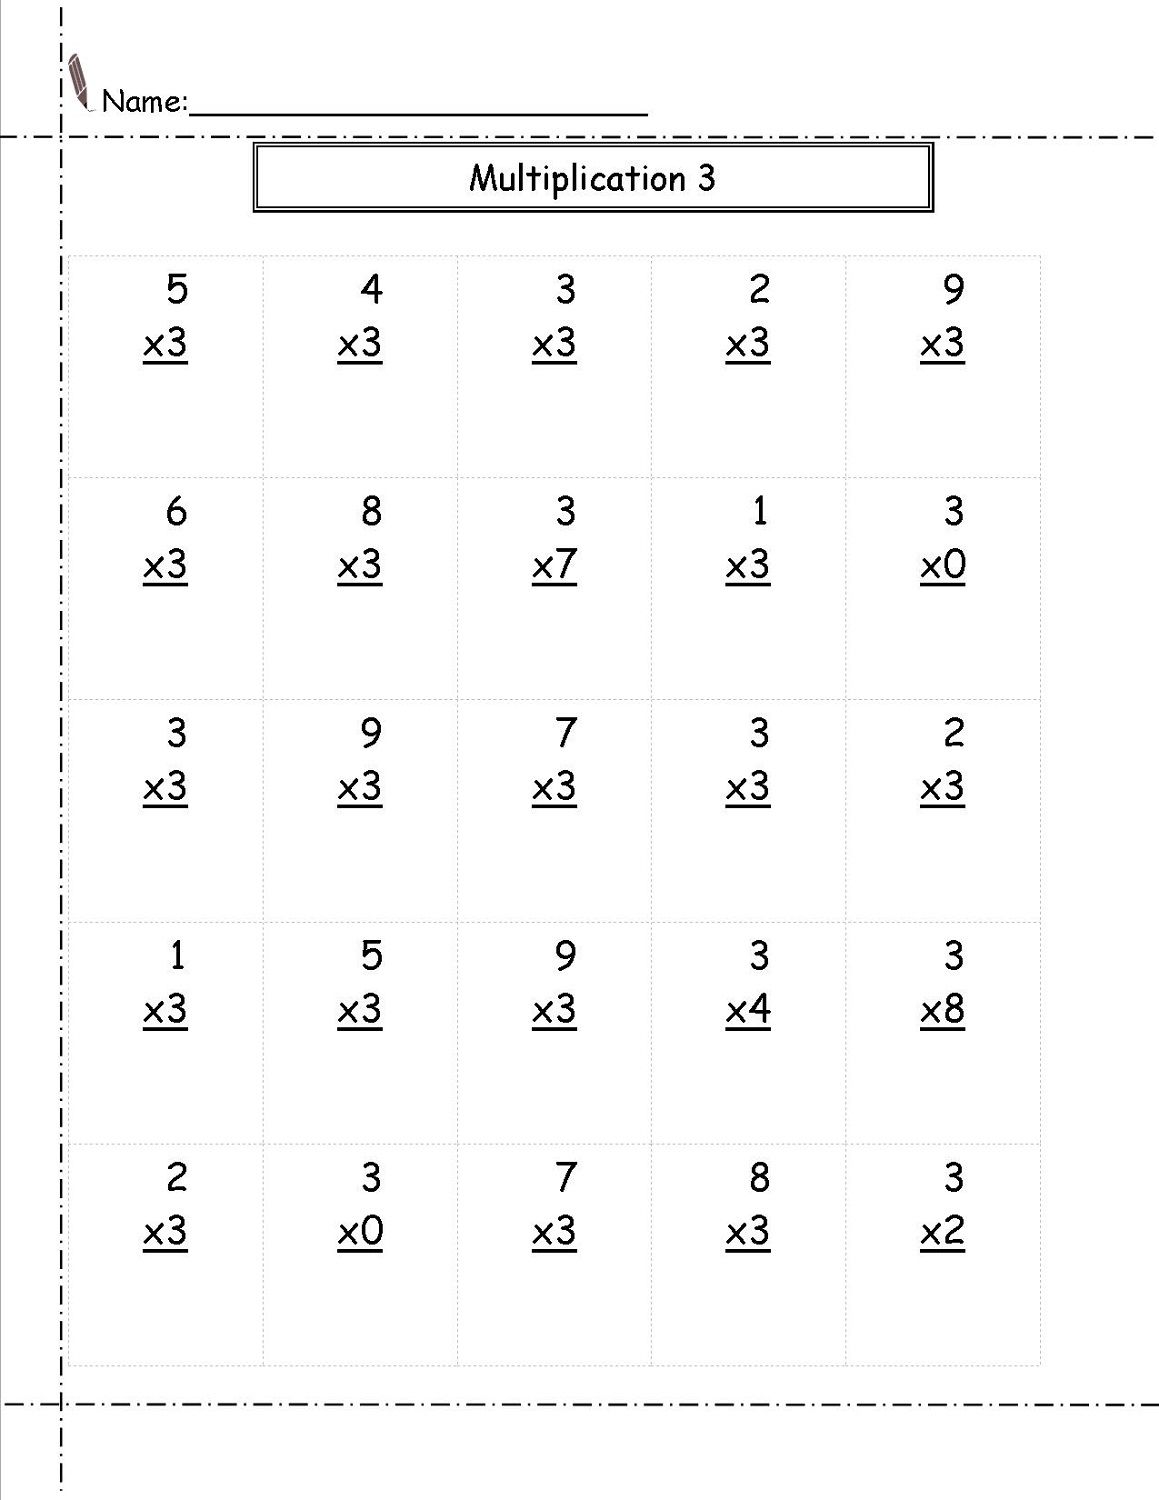 New 3 Times Table Worksheets To Print